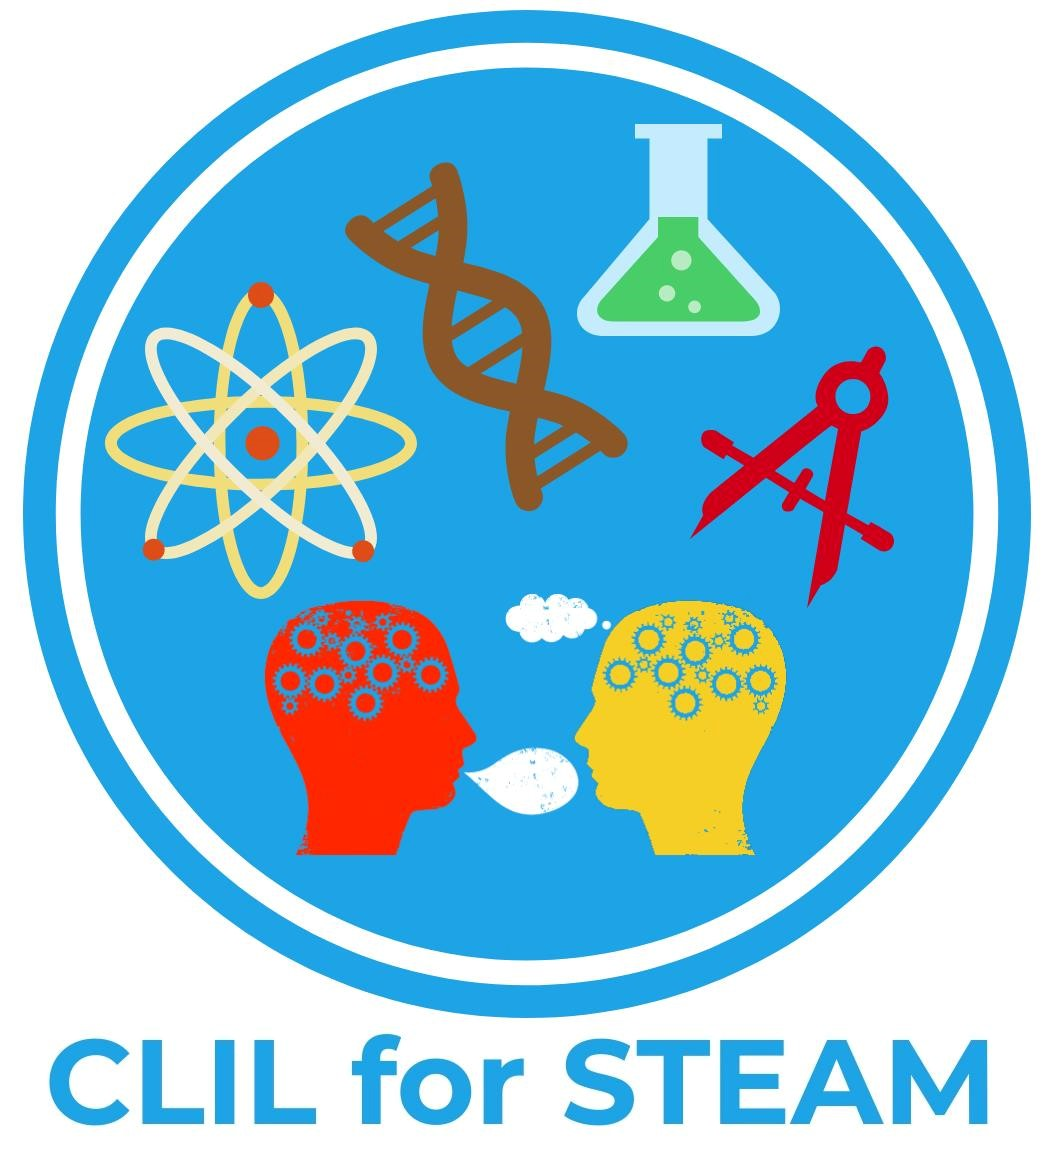 CLIL for STEAM